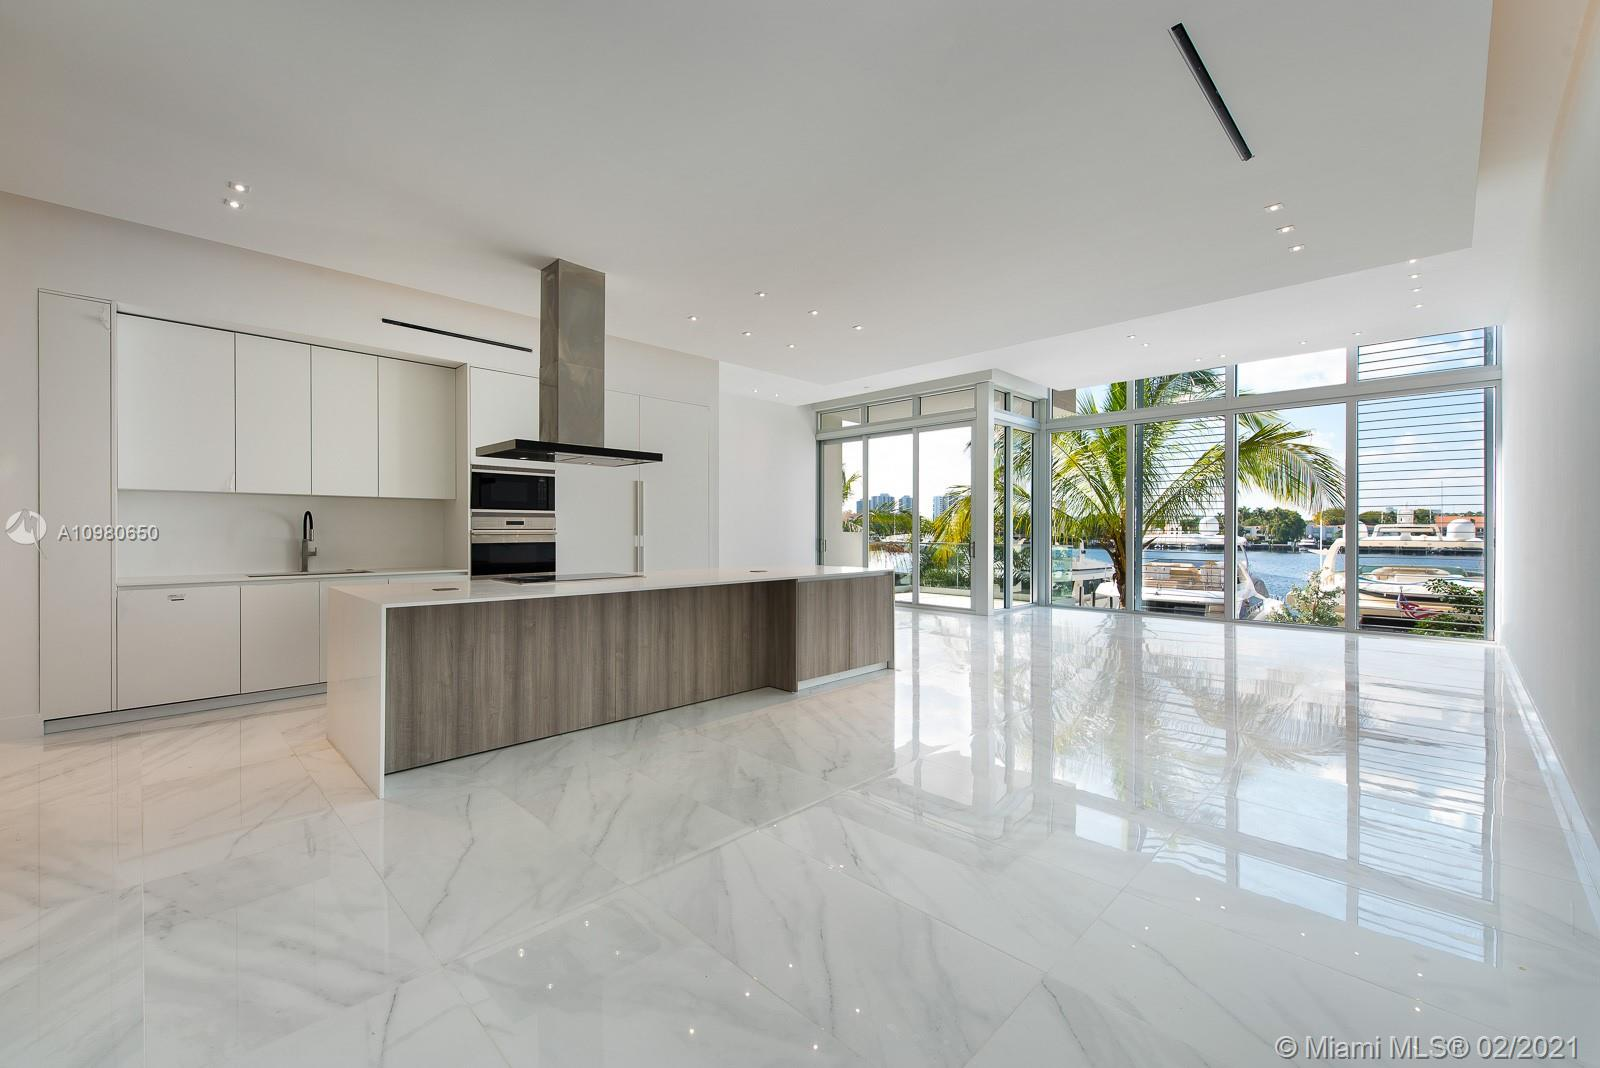 """New construction waterfront modern marvel. These new residences are to be complete this month! This """"Mallorca"""" model boasts over 3,585 SF interior with a private elevator, staff quarters, den or 4th bedroom, overlooking a tranquil marina and 90' yachts - slips available 40-120'. Located at The Point in Aventura, this waterfront residence will be delivered finished with custom ceilings, porcelain flooring and other fine finishes by Interiors by Steven G. Featuring modern Italian kitchens and bathroom cabinets by Mia Cucina, including top-of-the-line Subzero and Wolf appliances. Dramatic 12-foot ceiling heights in living room, dining room & kitchens areas. Owners will enjoy a 25,000 SF state-of-the-art fitness center & full-service spa, fitness center, spa café, and lighted tennis courts."""